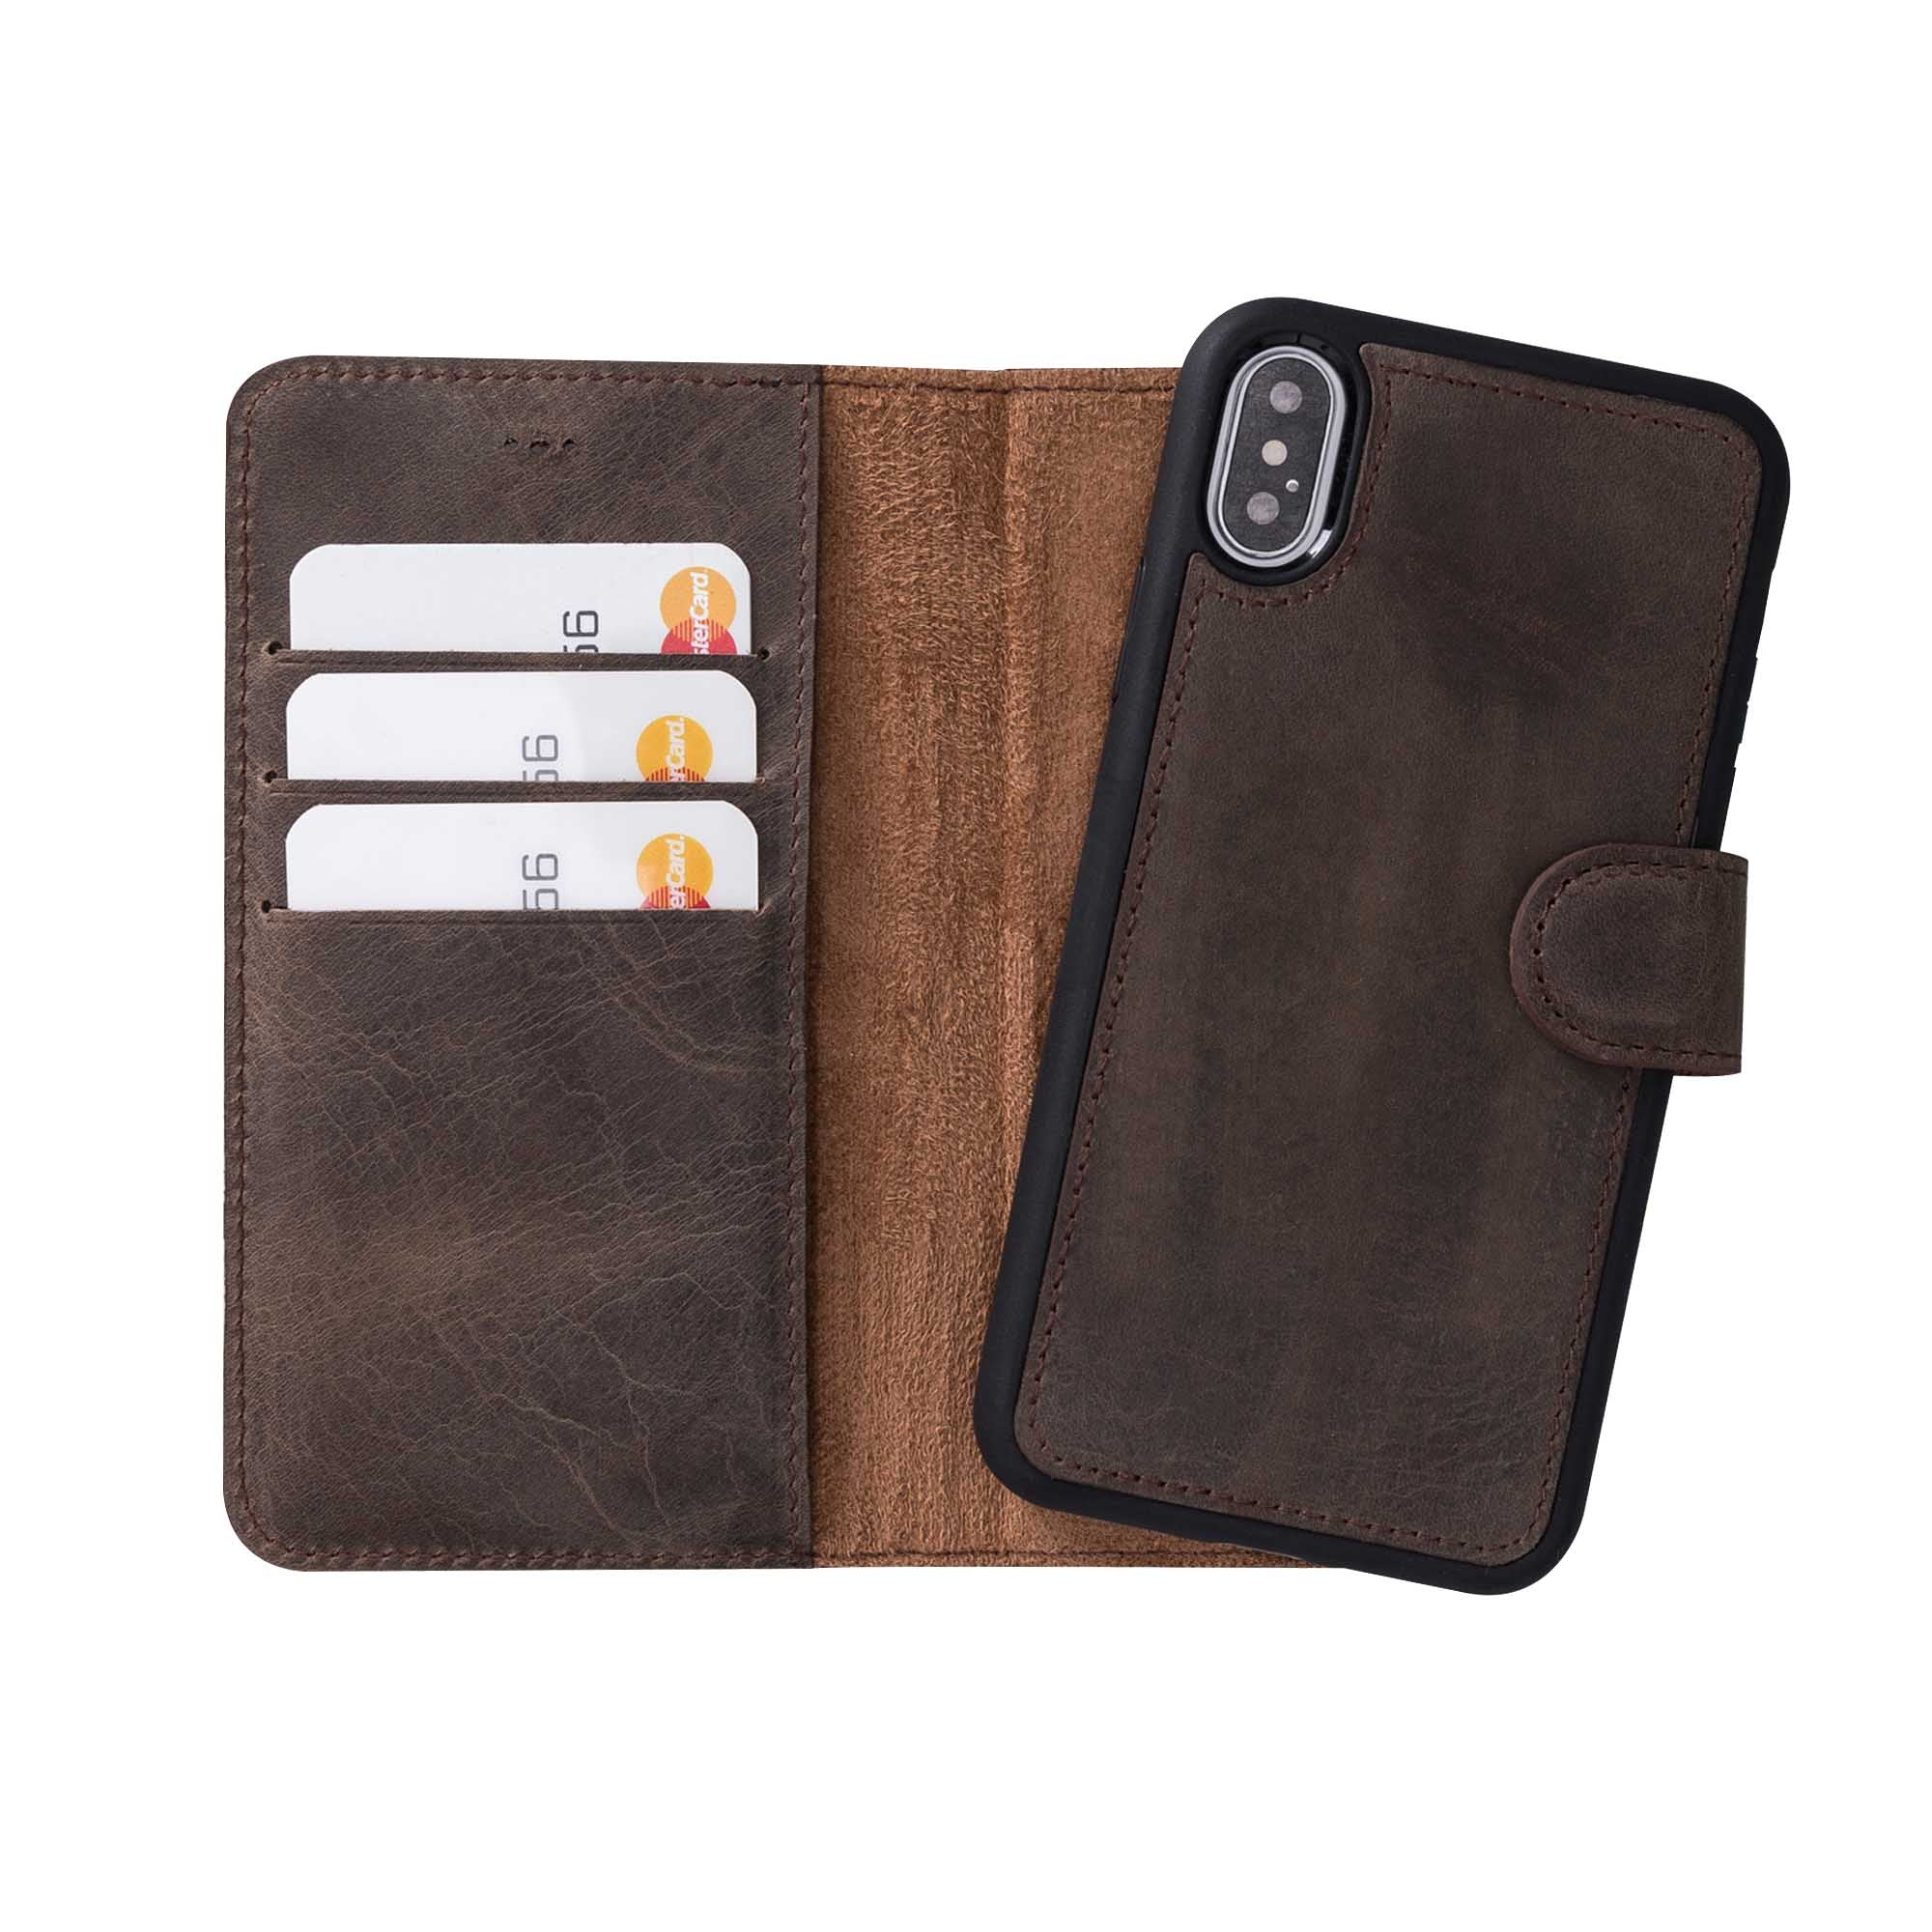 "Magic Magnetic Detachable Leather Wallet Case for iPhone X / XS (5.8"") - BROWN"